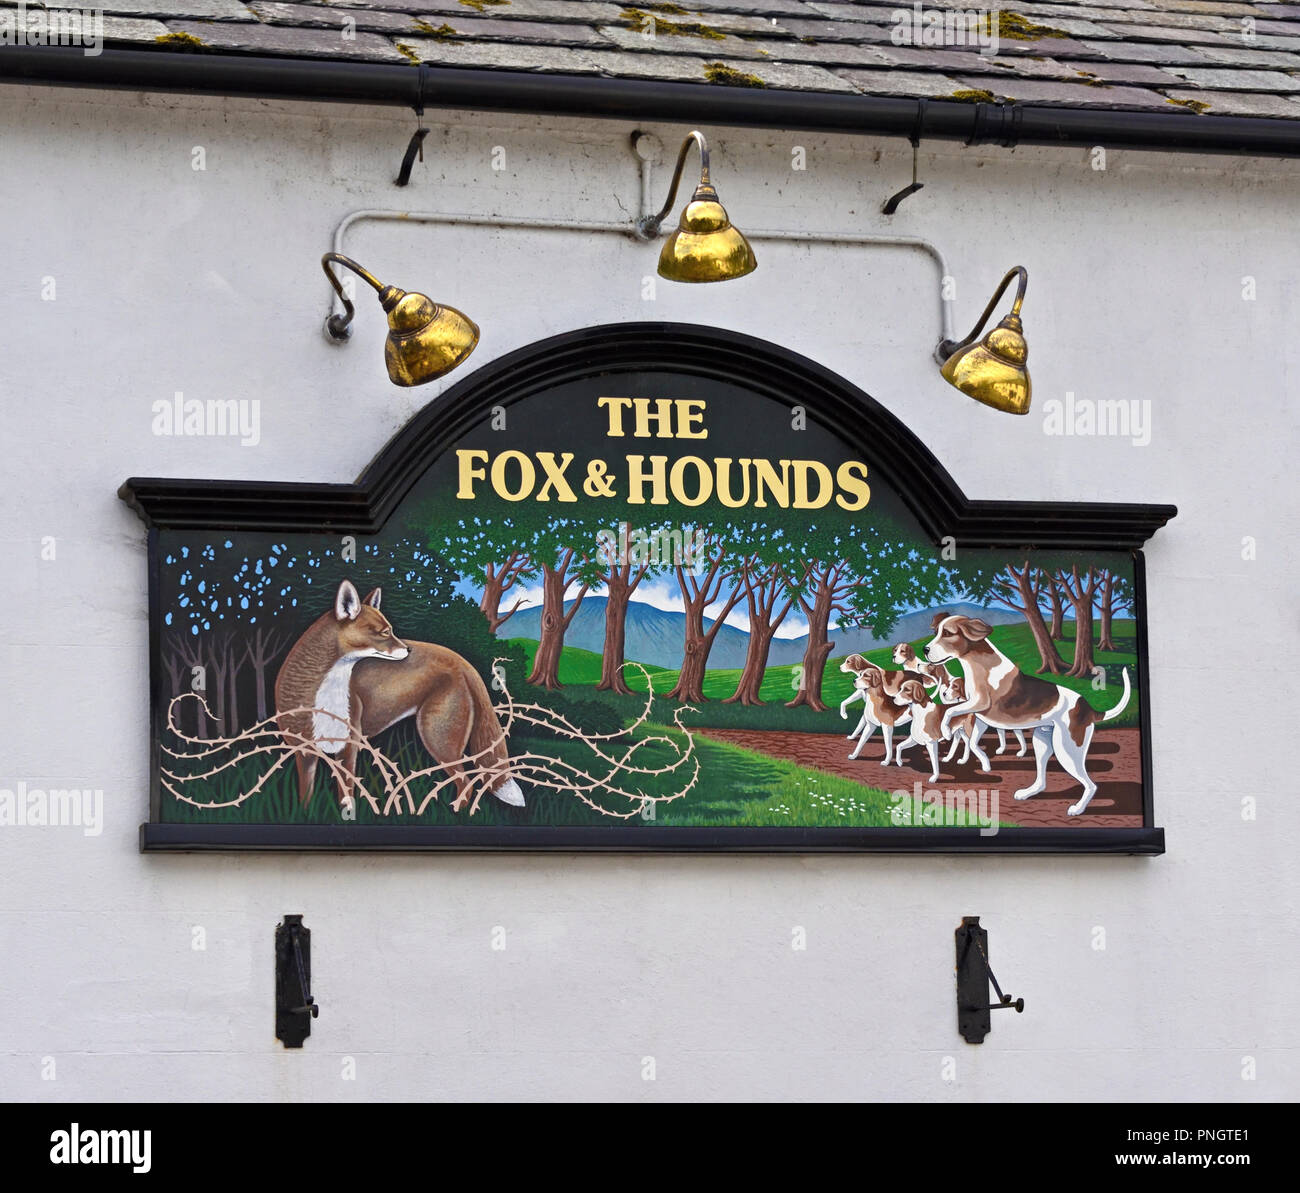 Inn sign, The Fox and Hounds. Ennerdale Bridge, Lake District National Park, Cumbria, England, United Kingdom, Europe. Stock Photo